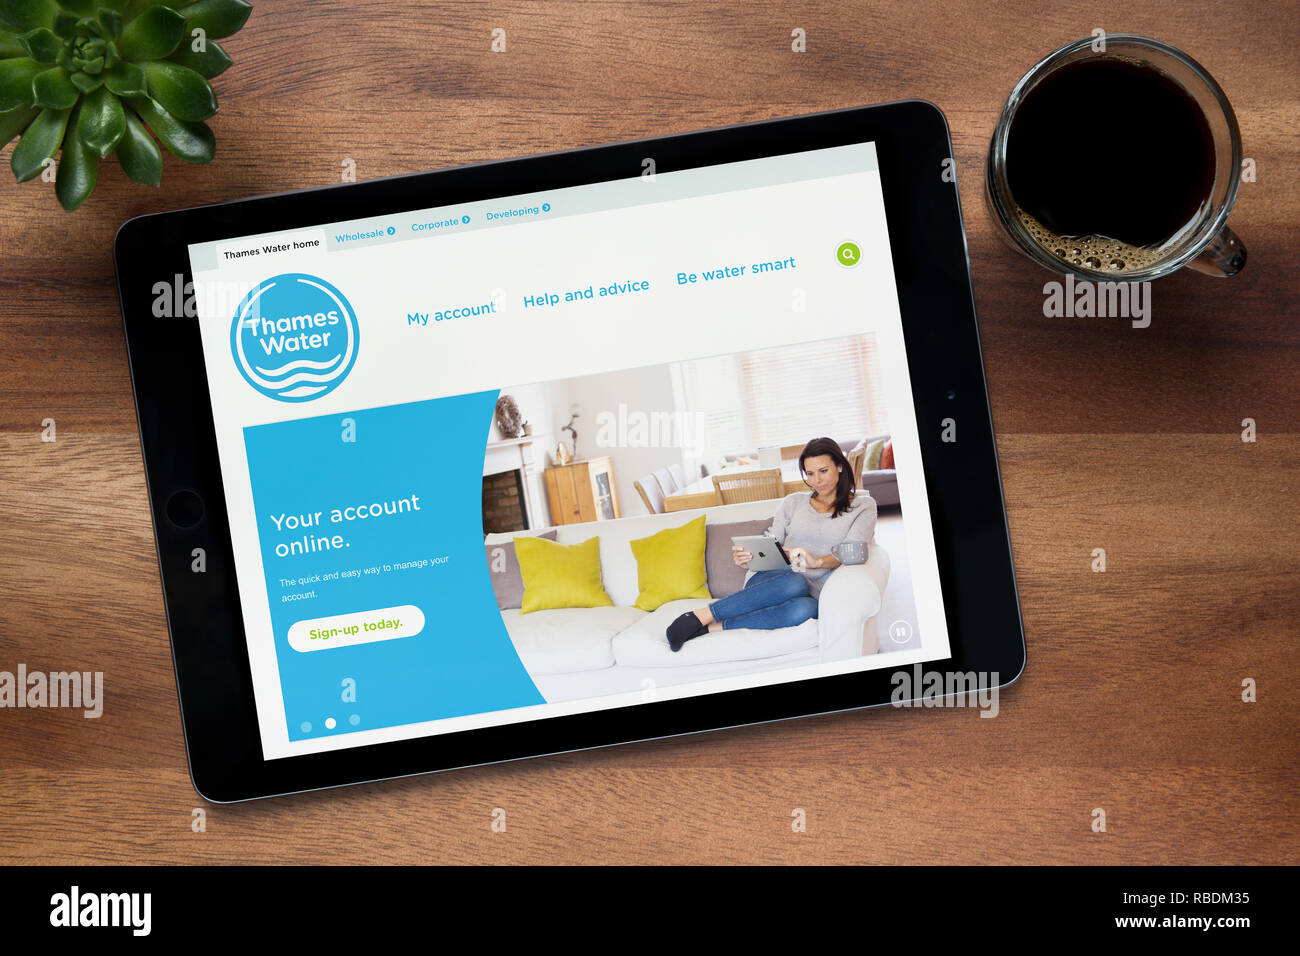 The website of Thames Water is seen on an iPad tablet, on a wooden table along with an espresso coffee and a house plant (Editorial use only). - Stock Image